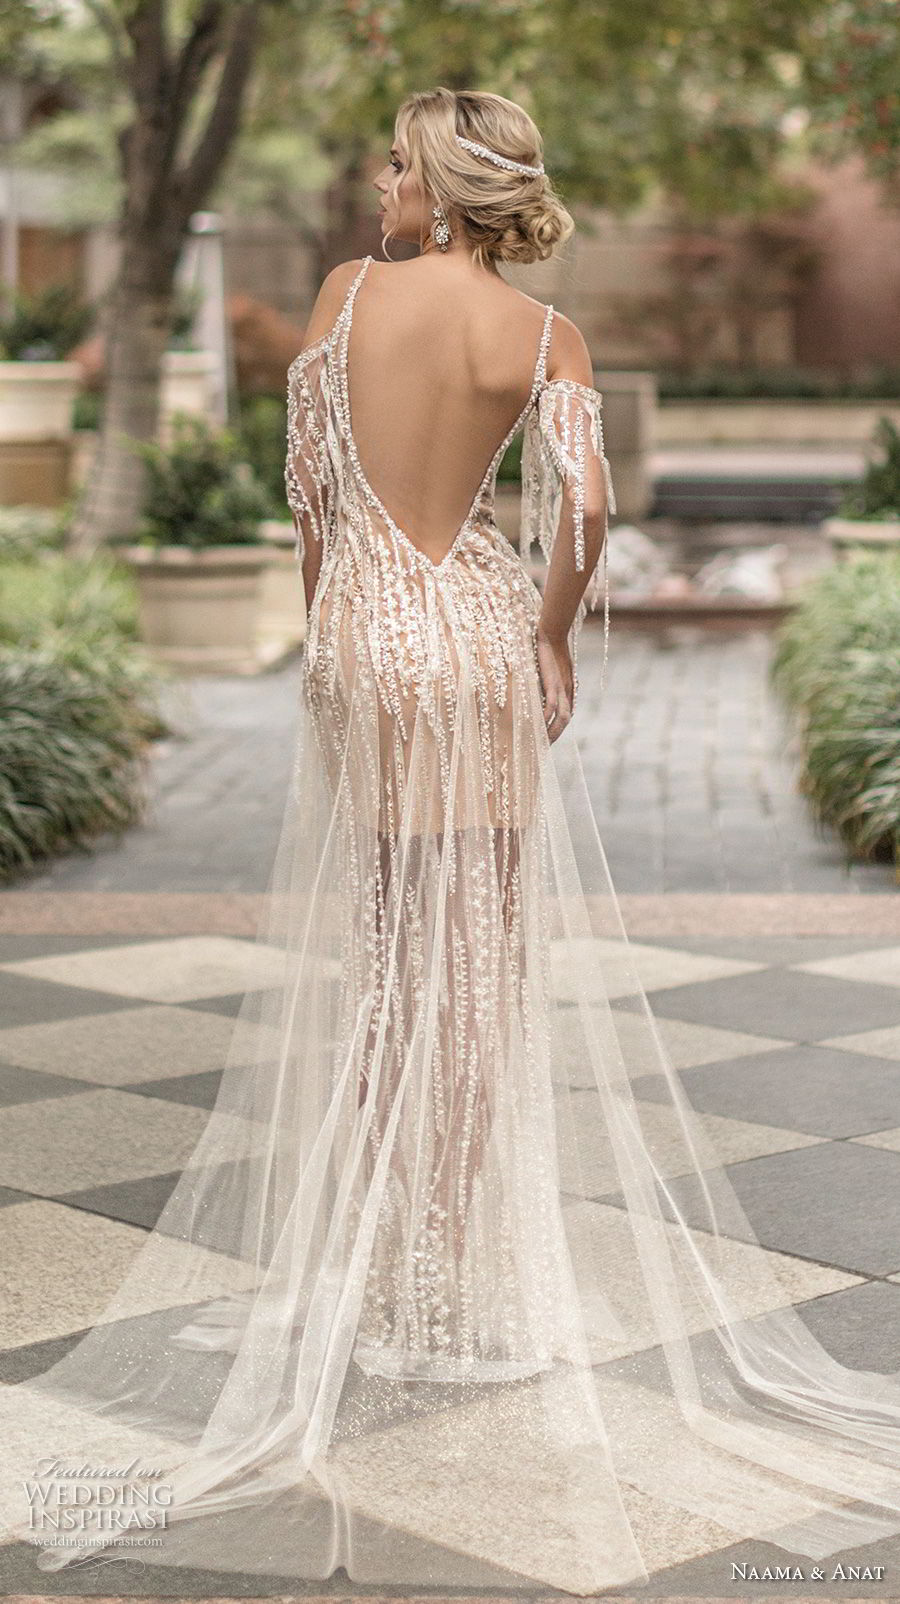 naama anat spring 2019 bridal cold shoulder spaghetti strap deep plunging sweetheart neckline full embellishment glamorous elegant sheath wedding dress open back chapel train (8) bv